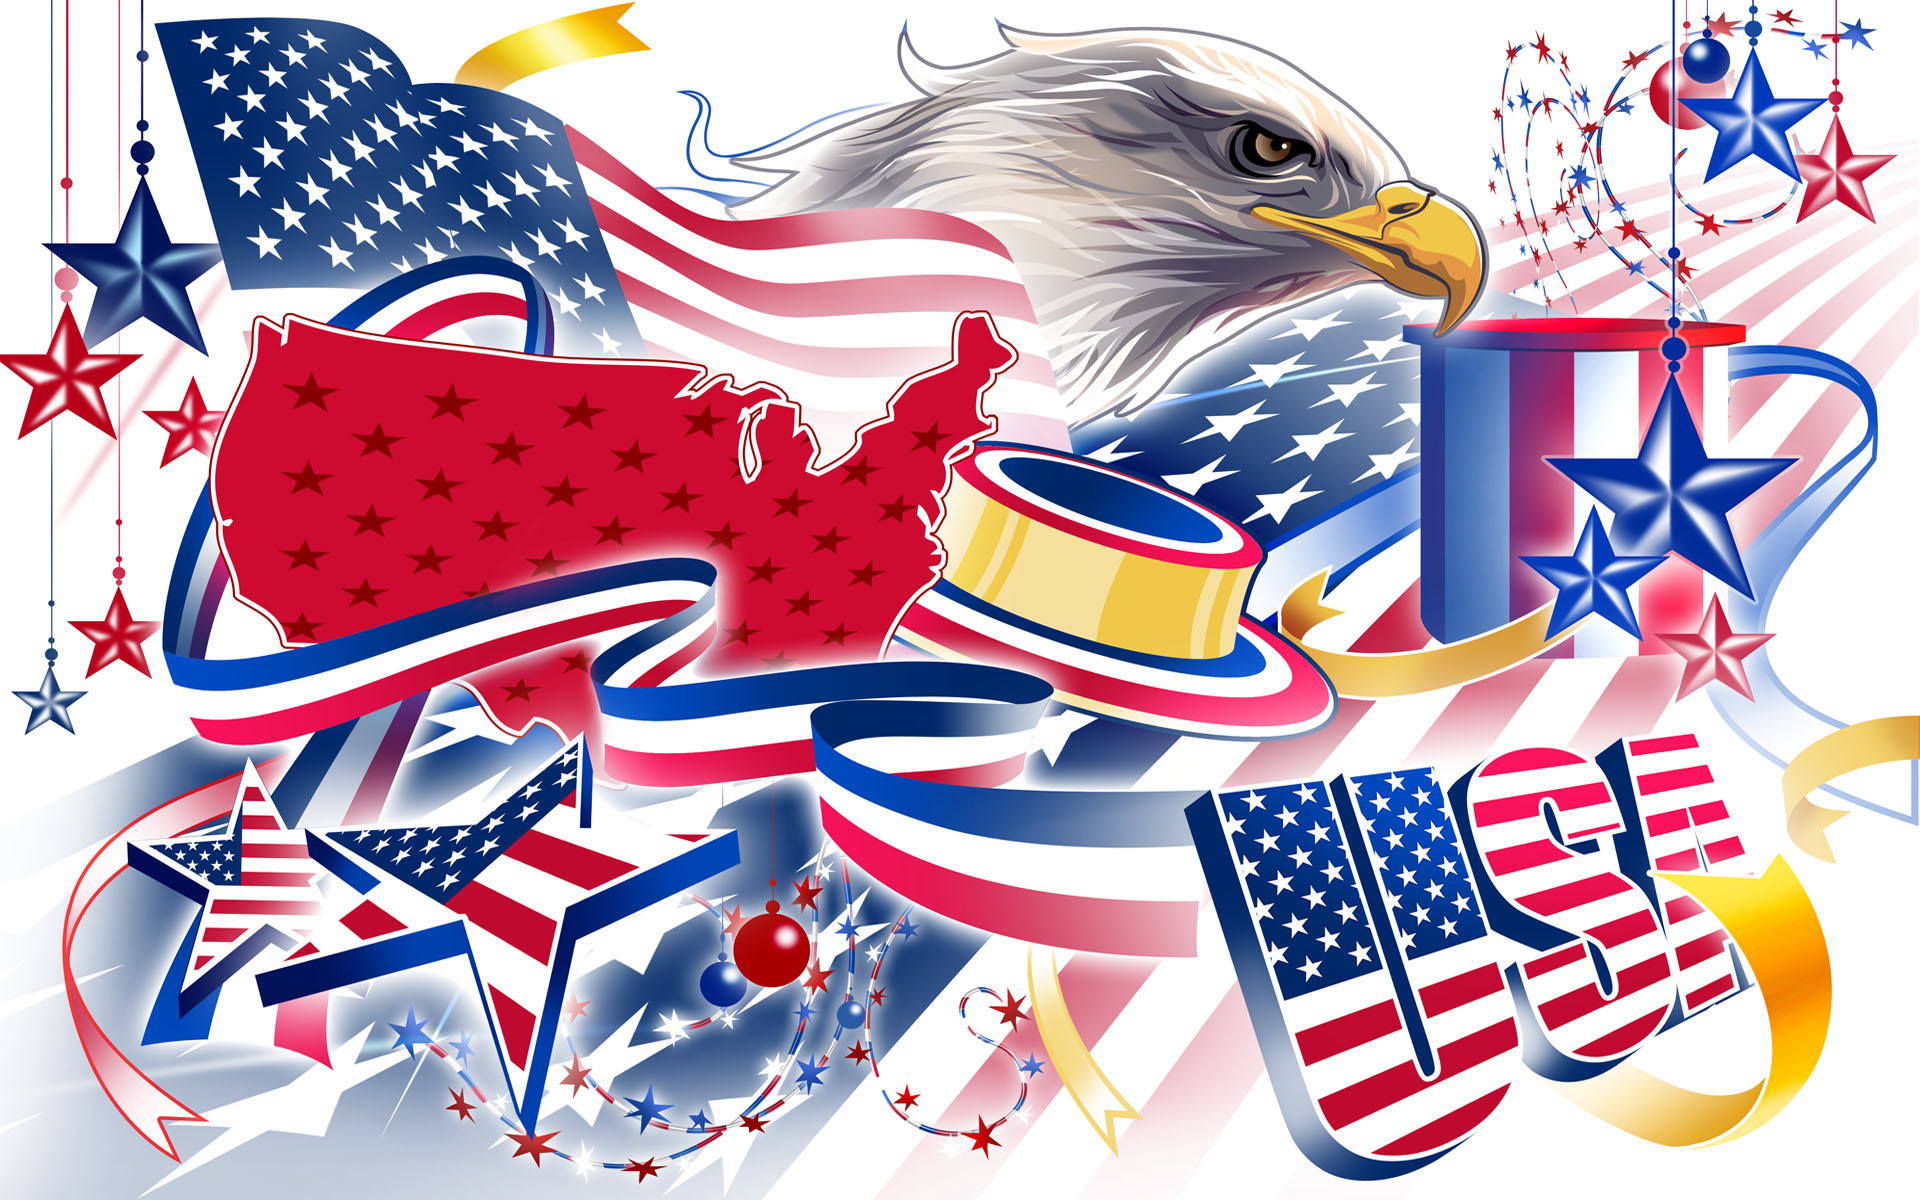 USA 4 July wallpapers USA 4 July stock photos 1920x1200